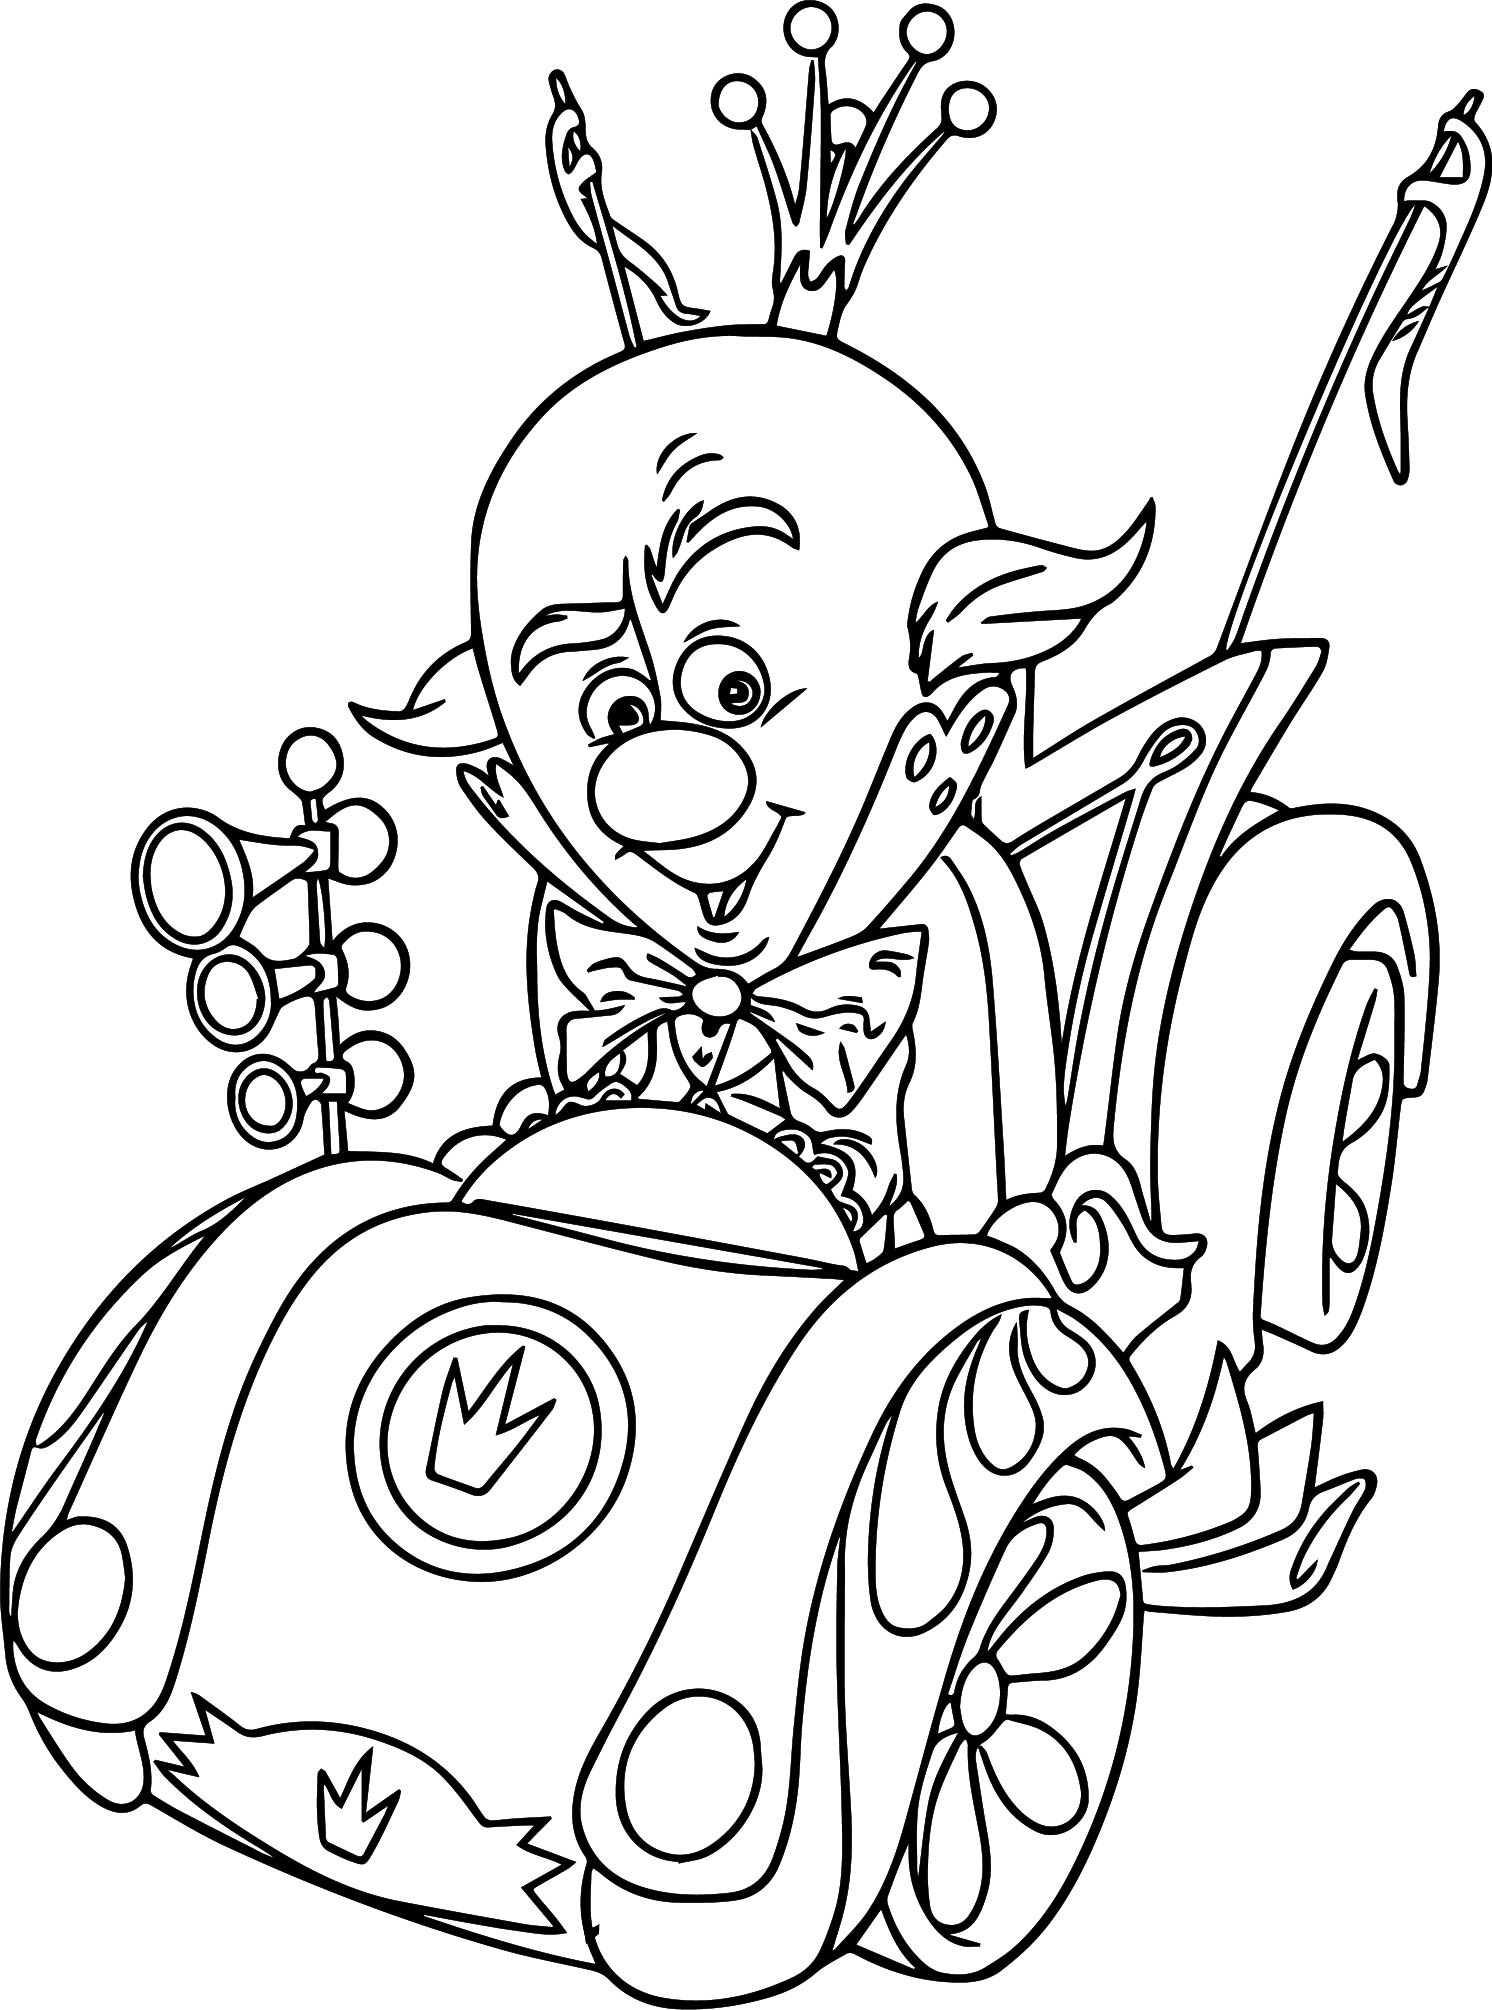 King candy car coloring page for Candy color pages